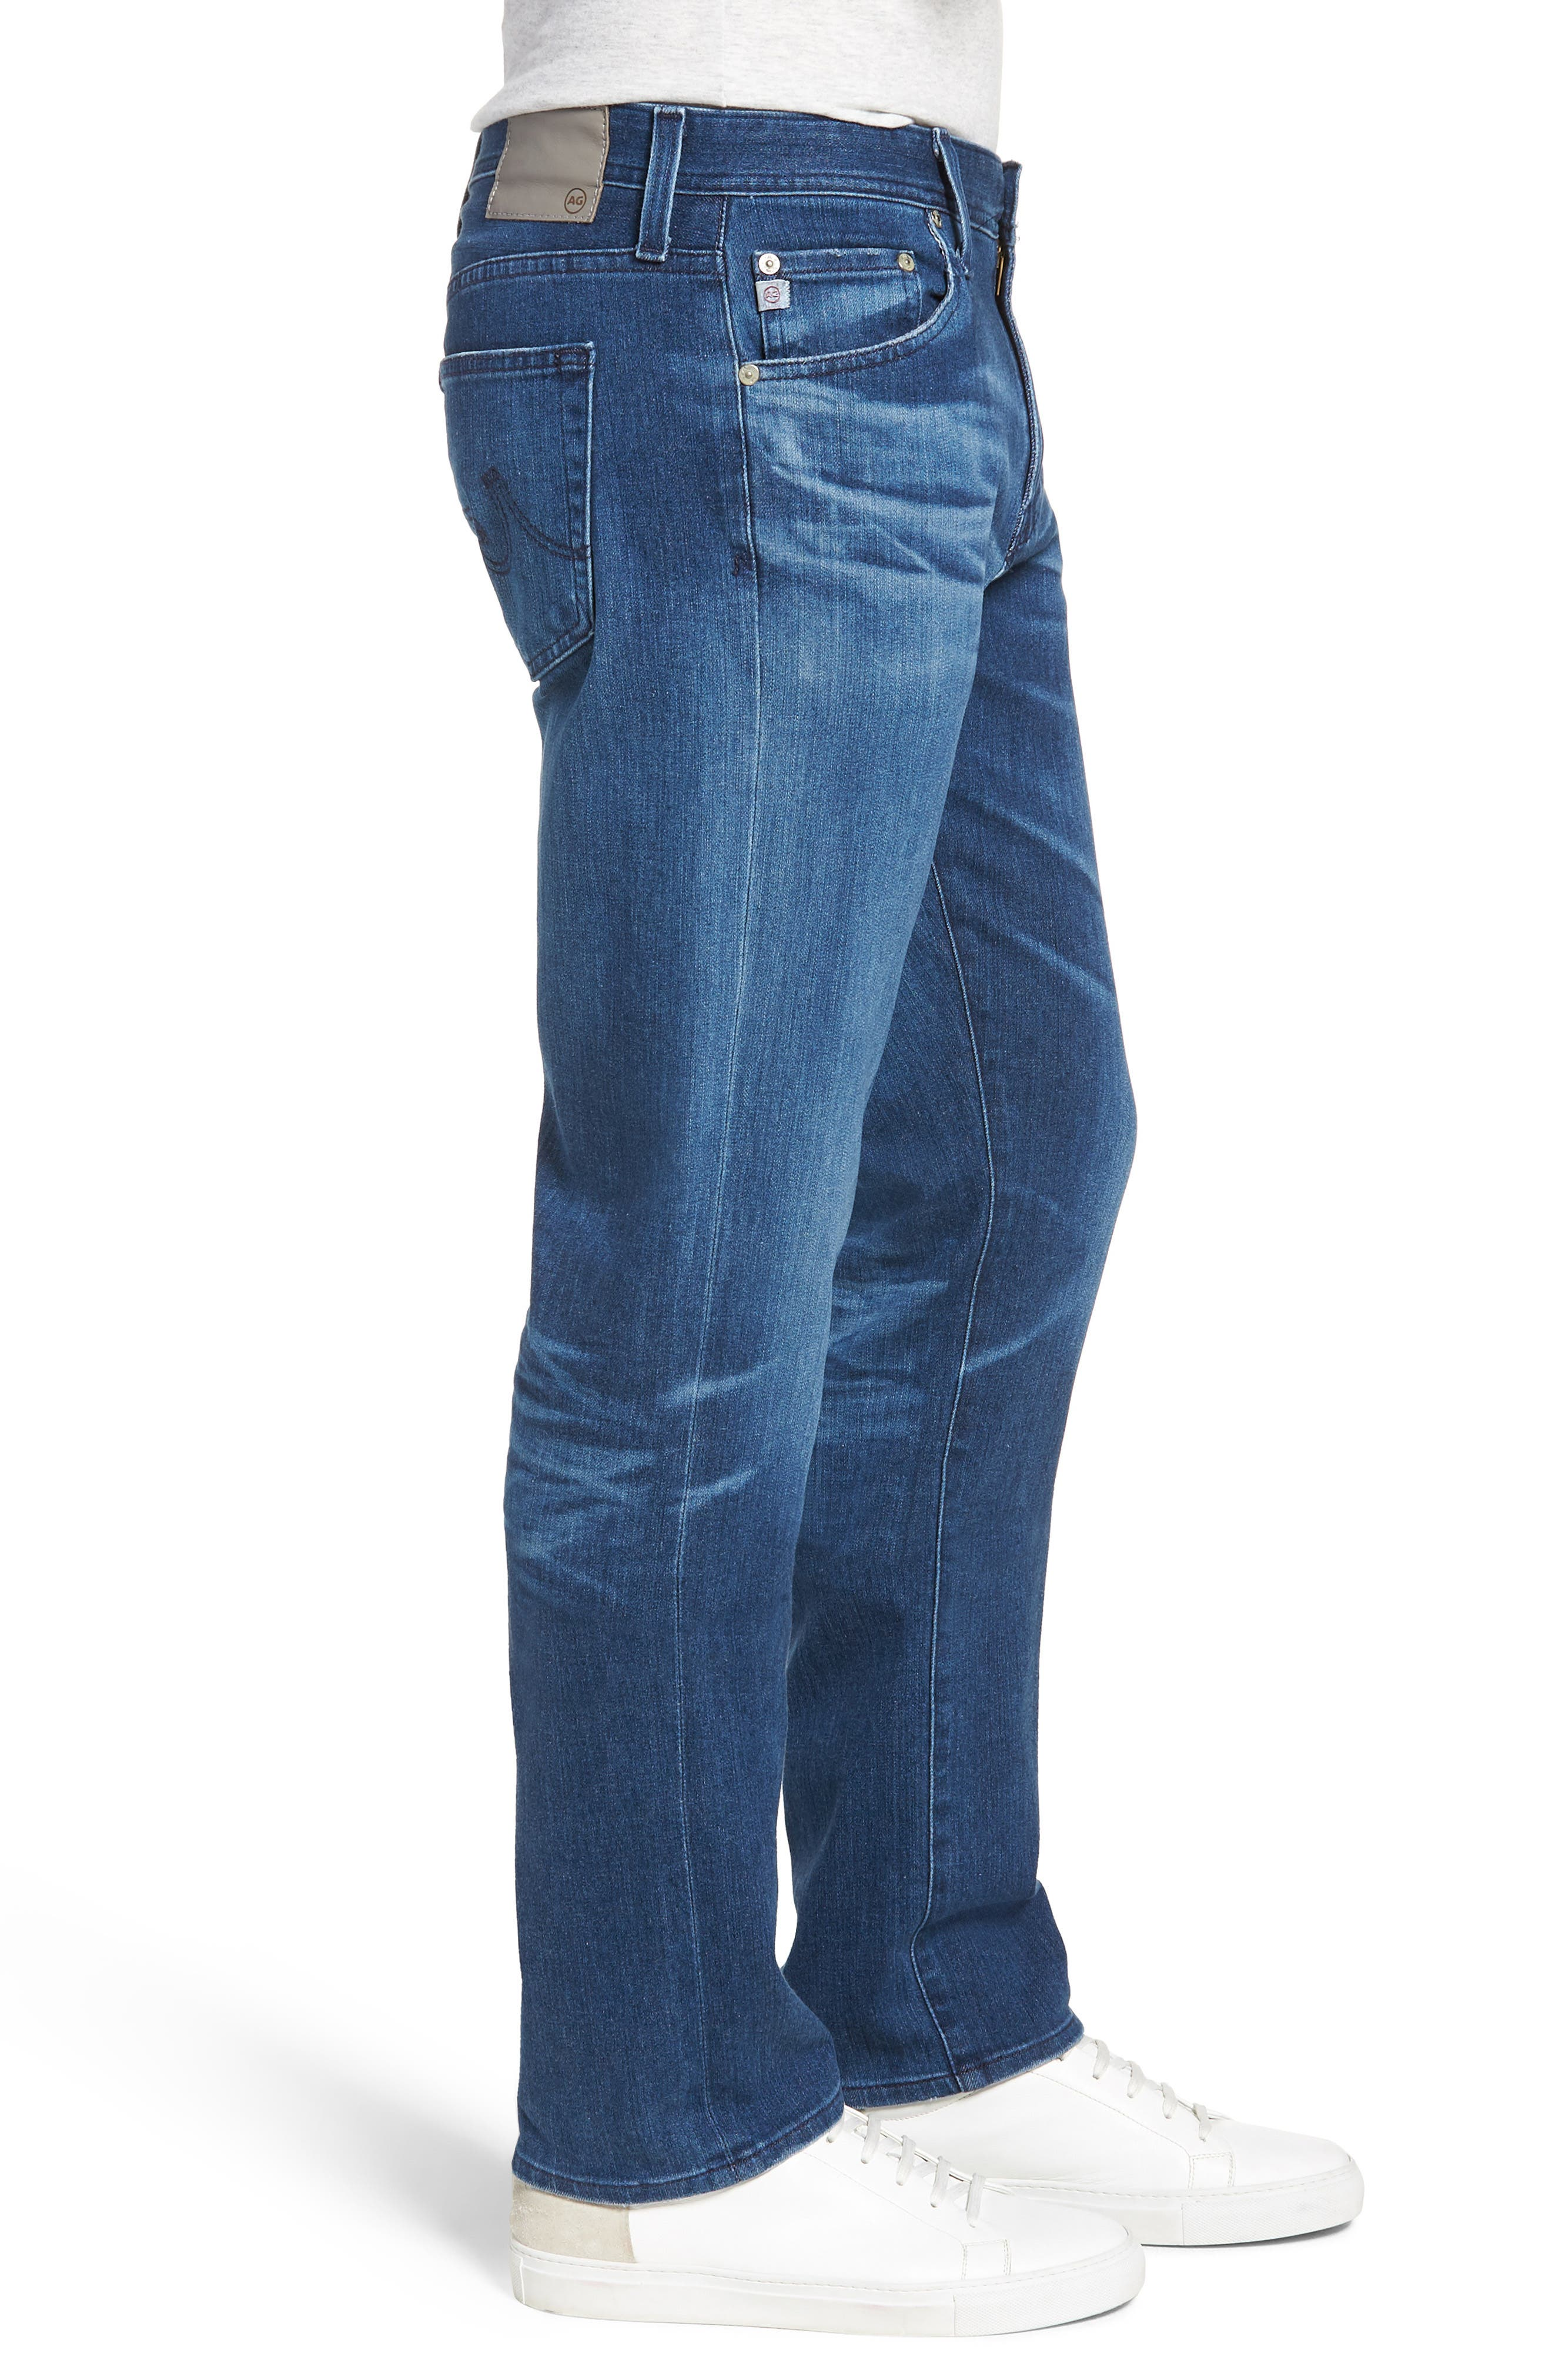 Graduate Slim Straight Fit Jeans,                             Alternate thumbnail 3, color,                             10 YEARS PAPERBACK